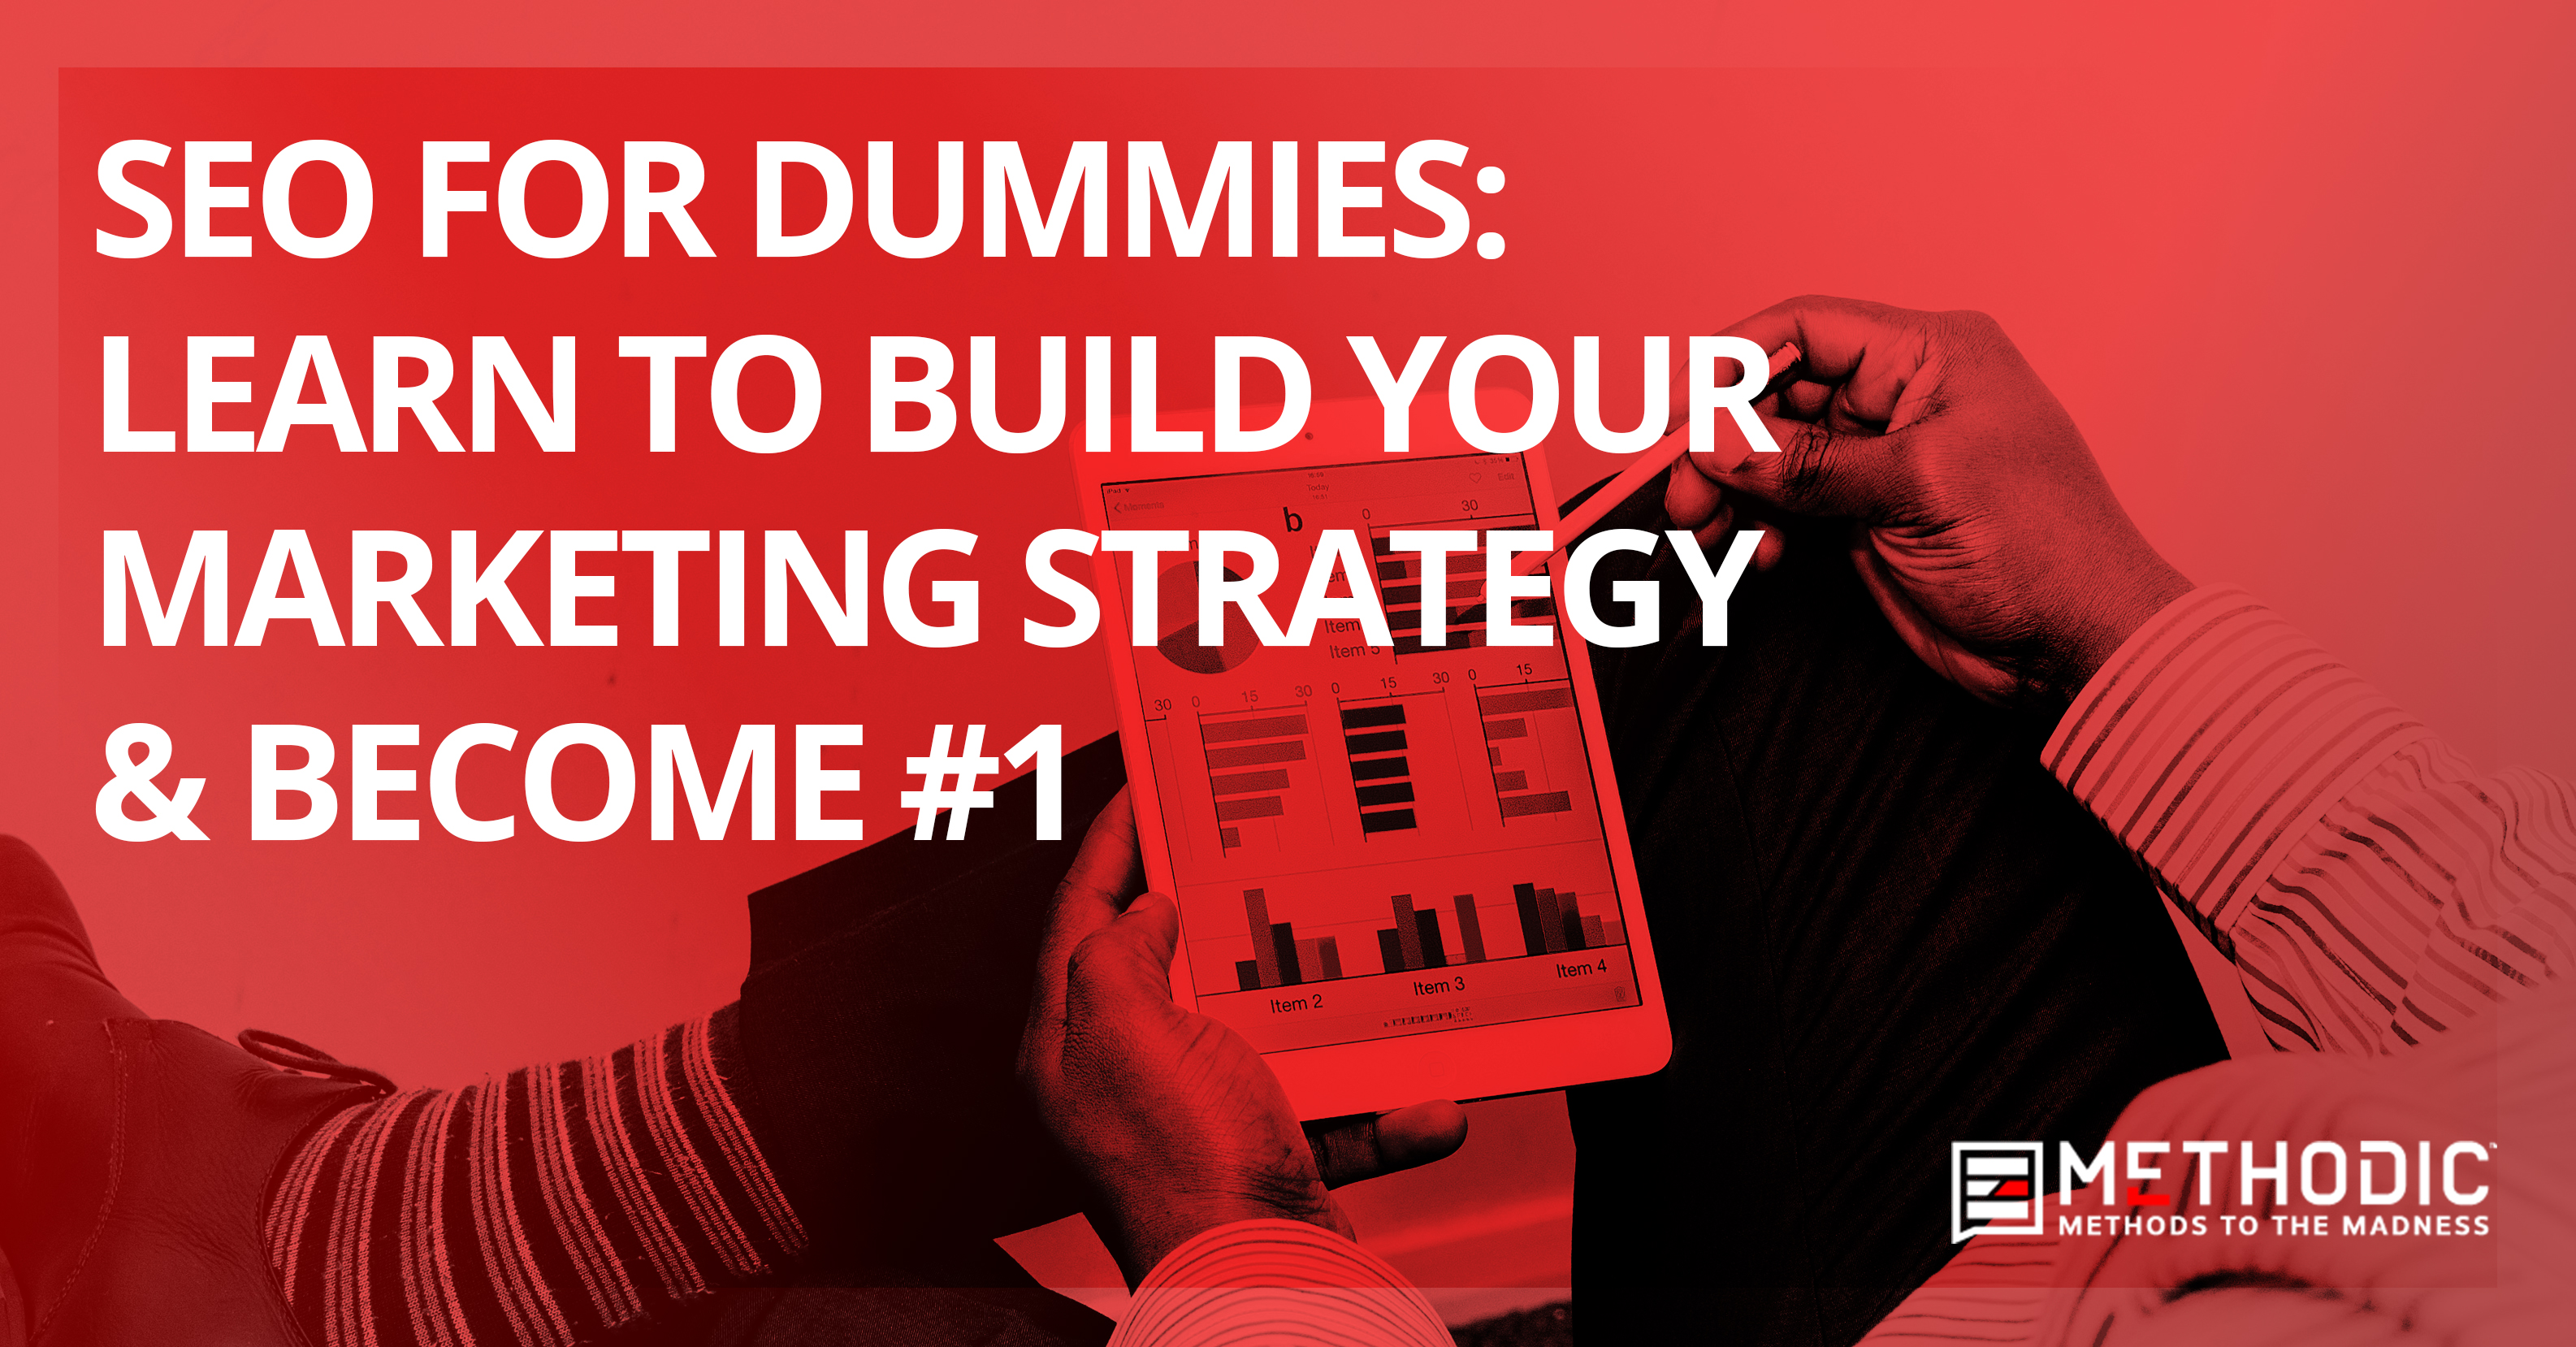 SEO For Dummies: Learn to Build Your Marketing Strategy & Become #1